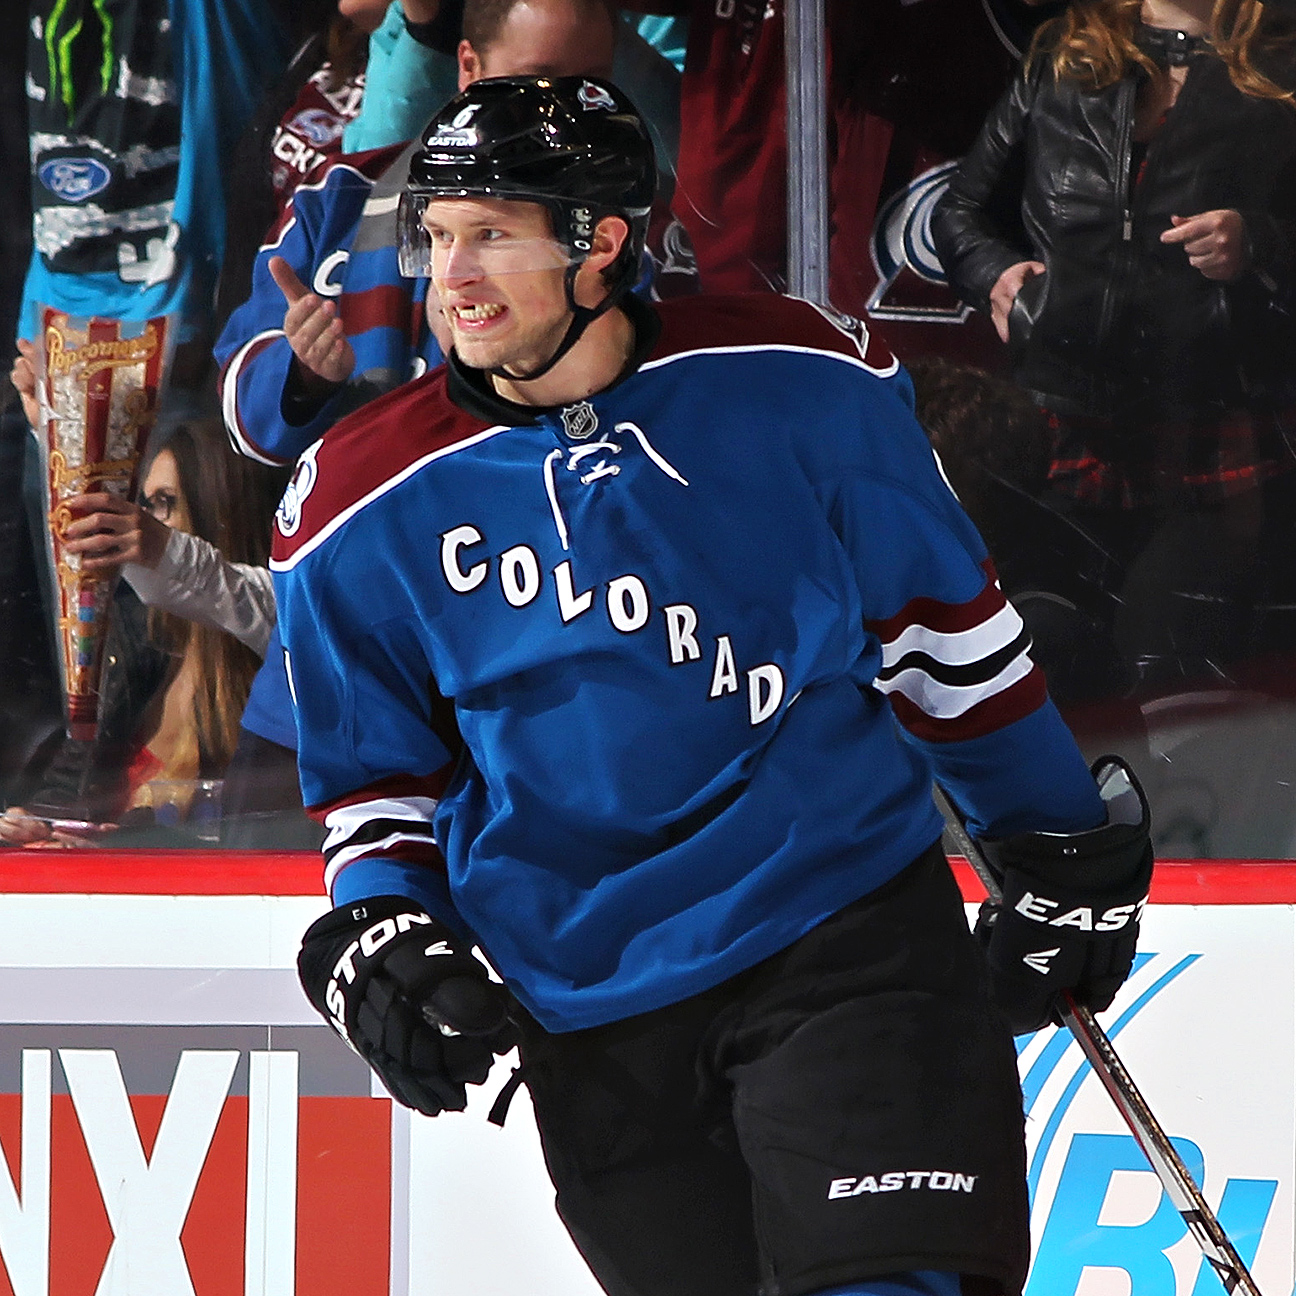 Avalanche's Johnson Breaks Leg, Out 6-8 Weeks